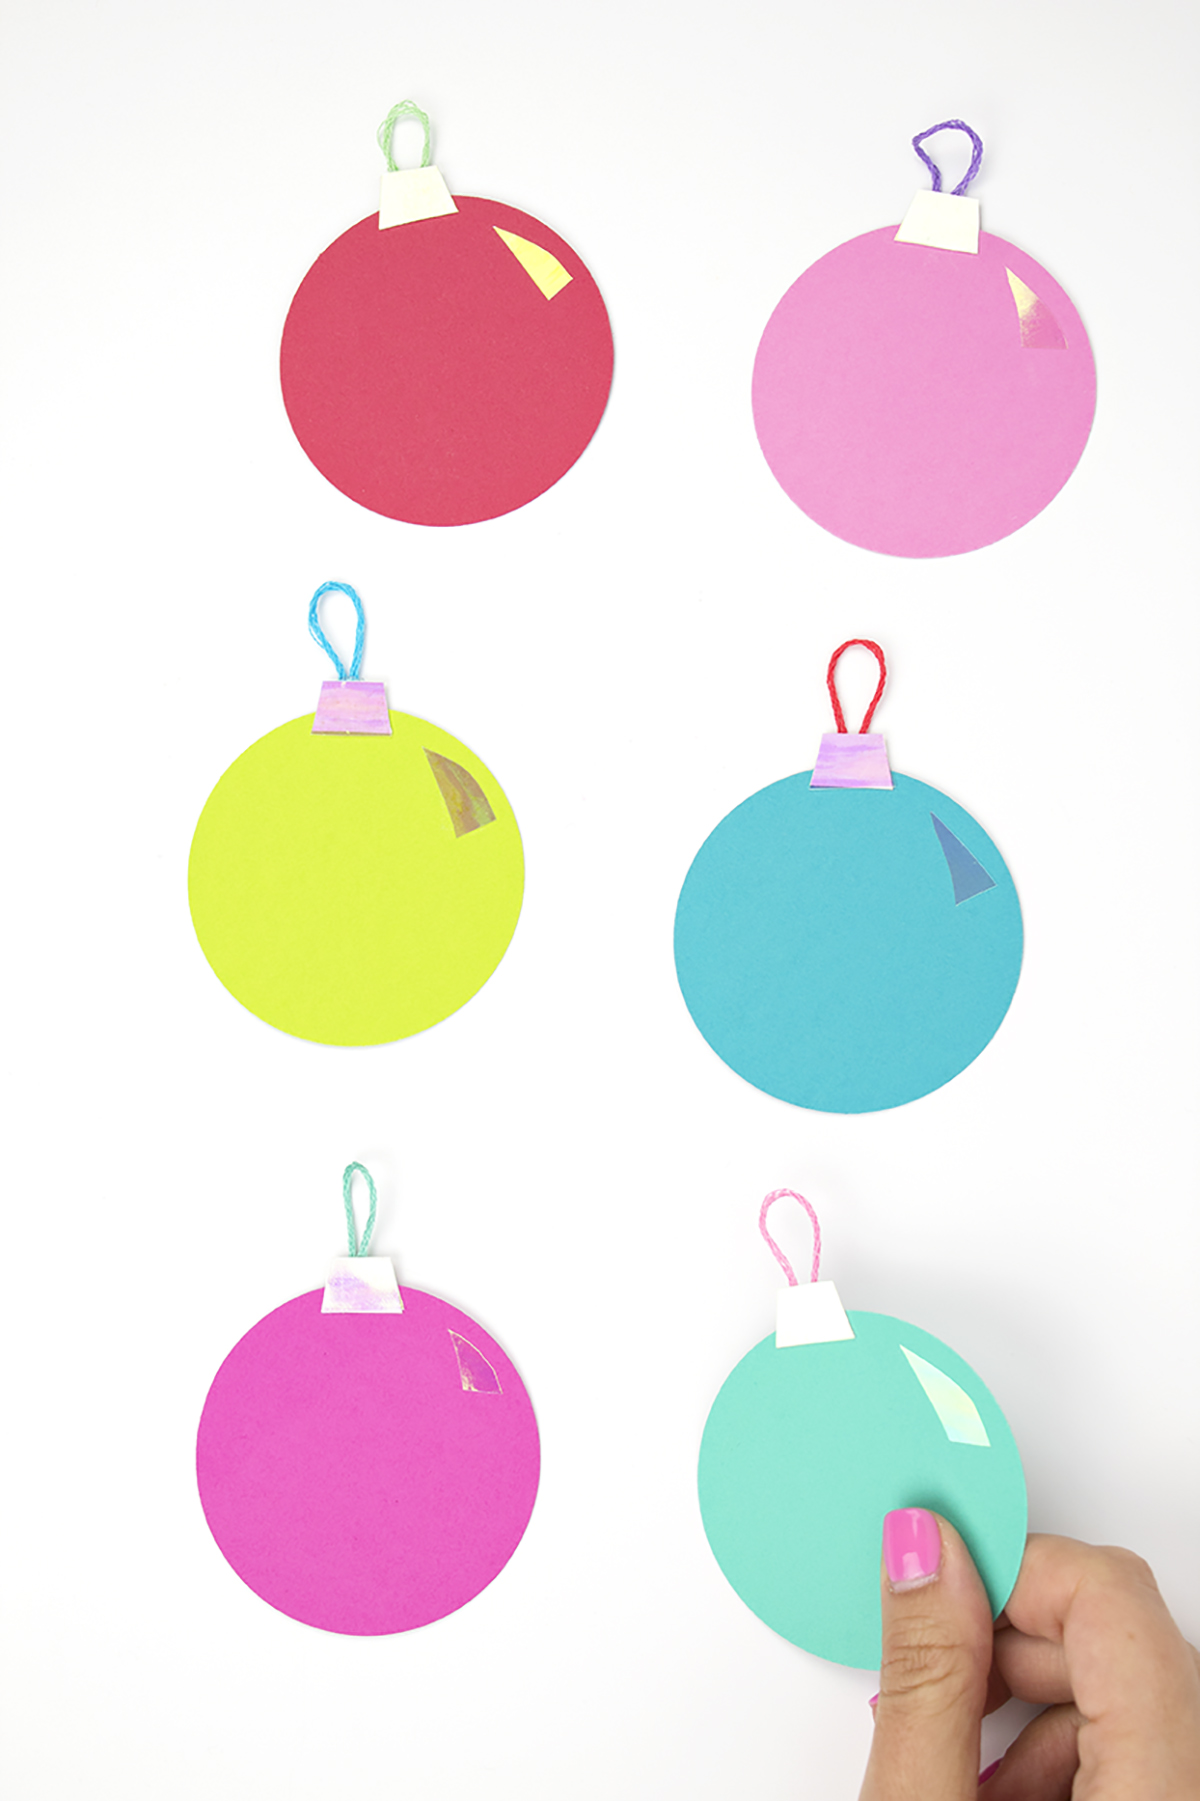 The iridescent effect on these ornaments is super 90's, while also being modern. Holographic items are coming back! Give them to all your friends who love the 90's as much as you do! Click for the DIY. #diychristmasornaments #diygifttags#diychristmascrafts